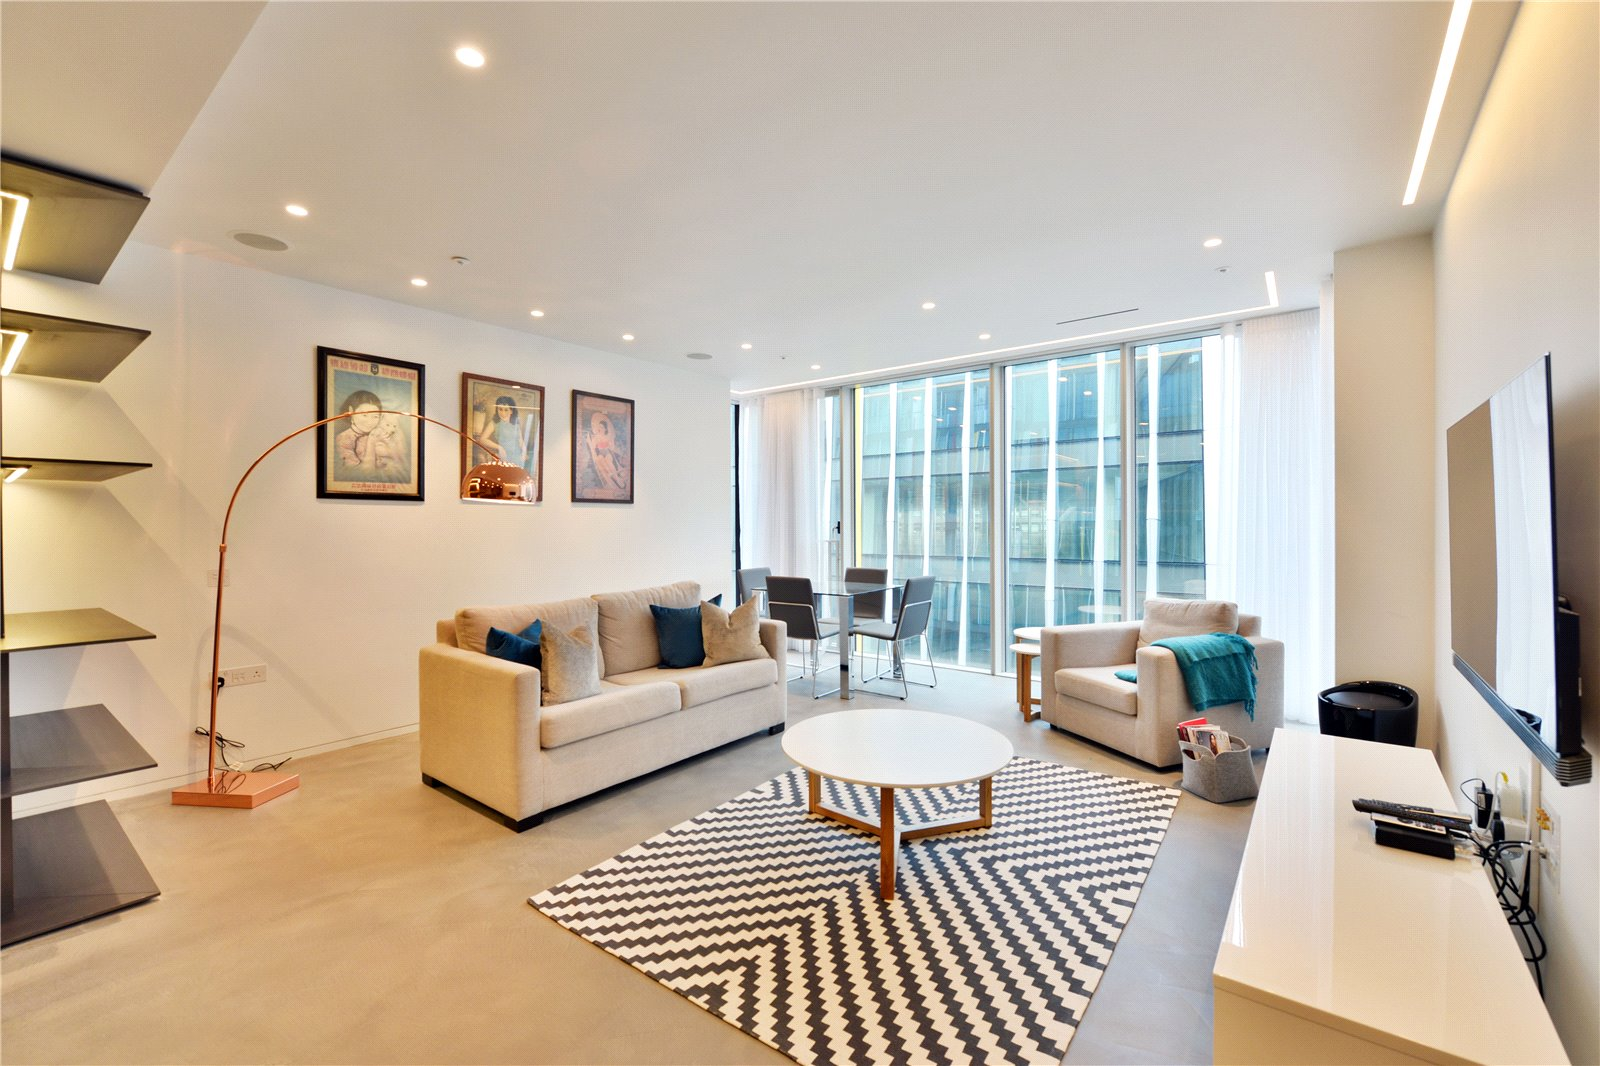 Apartment for Rent at Buckingham Palace Road, Victoria, London, SW1W Buckingham Palace Road, Victoria, London, SW1W